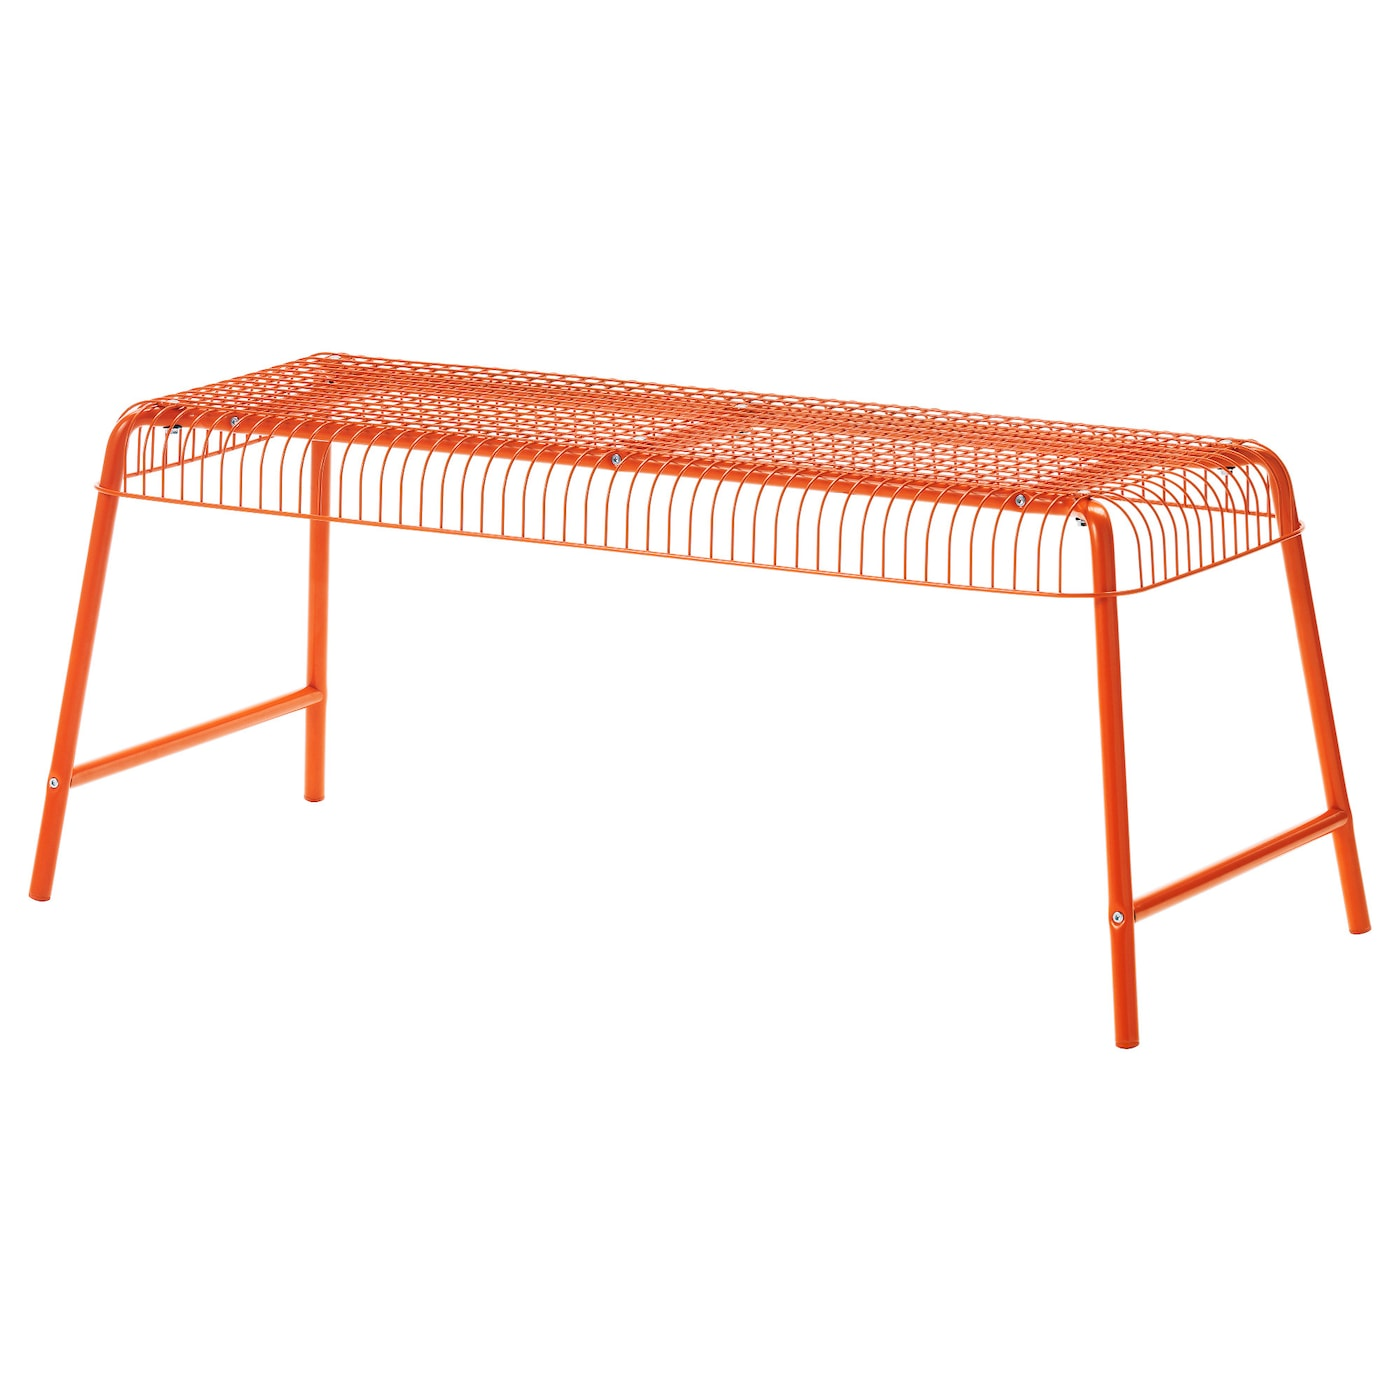 IKEA VÄSTERÖN bench, in/outdoor Can also be used in bathrooms and other damp areas indoors.